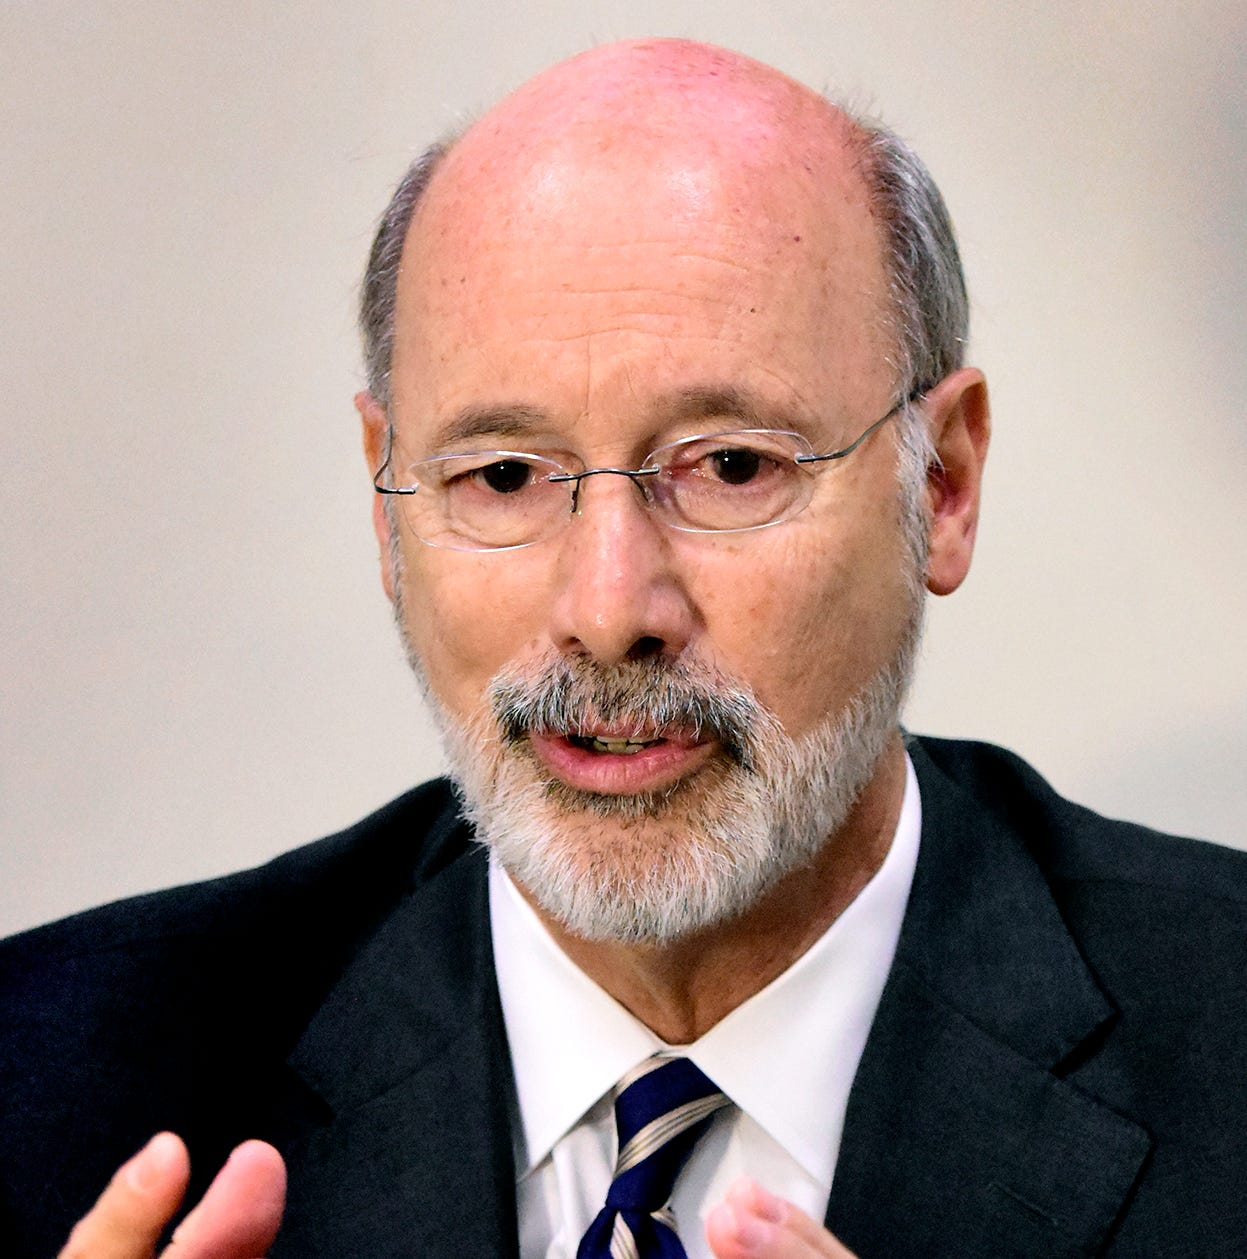 EDITORIAL: Wolf has earned a second term